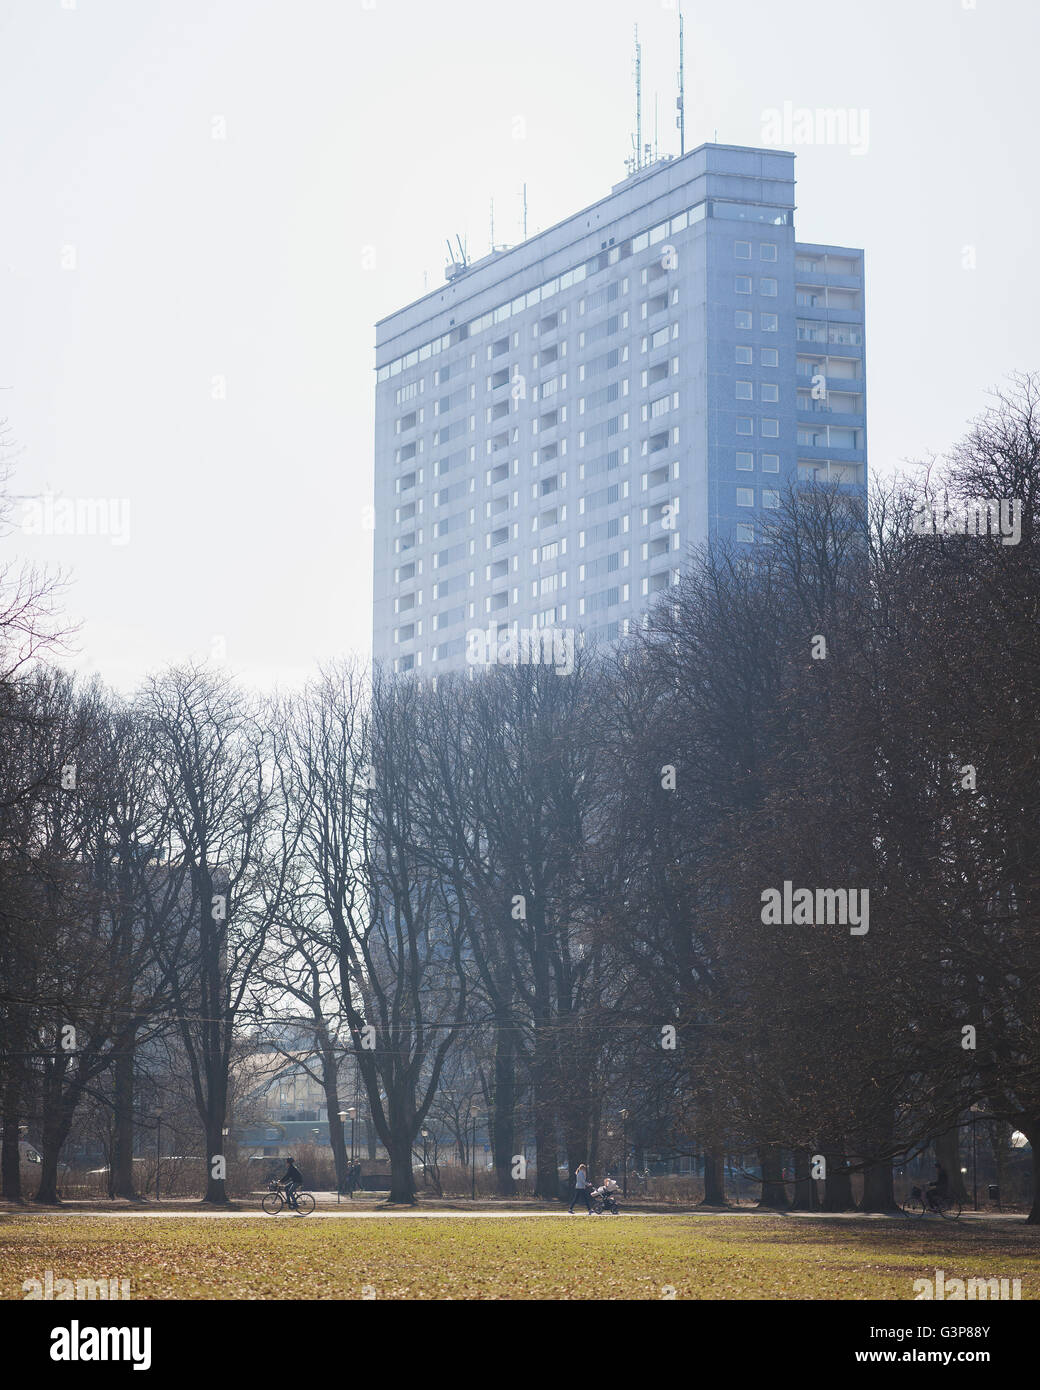 Sweden, Skane, Malmo, Park with tall building in background - Stock Image